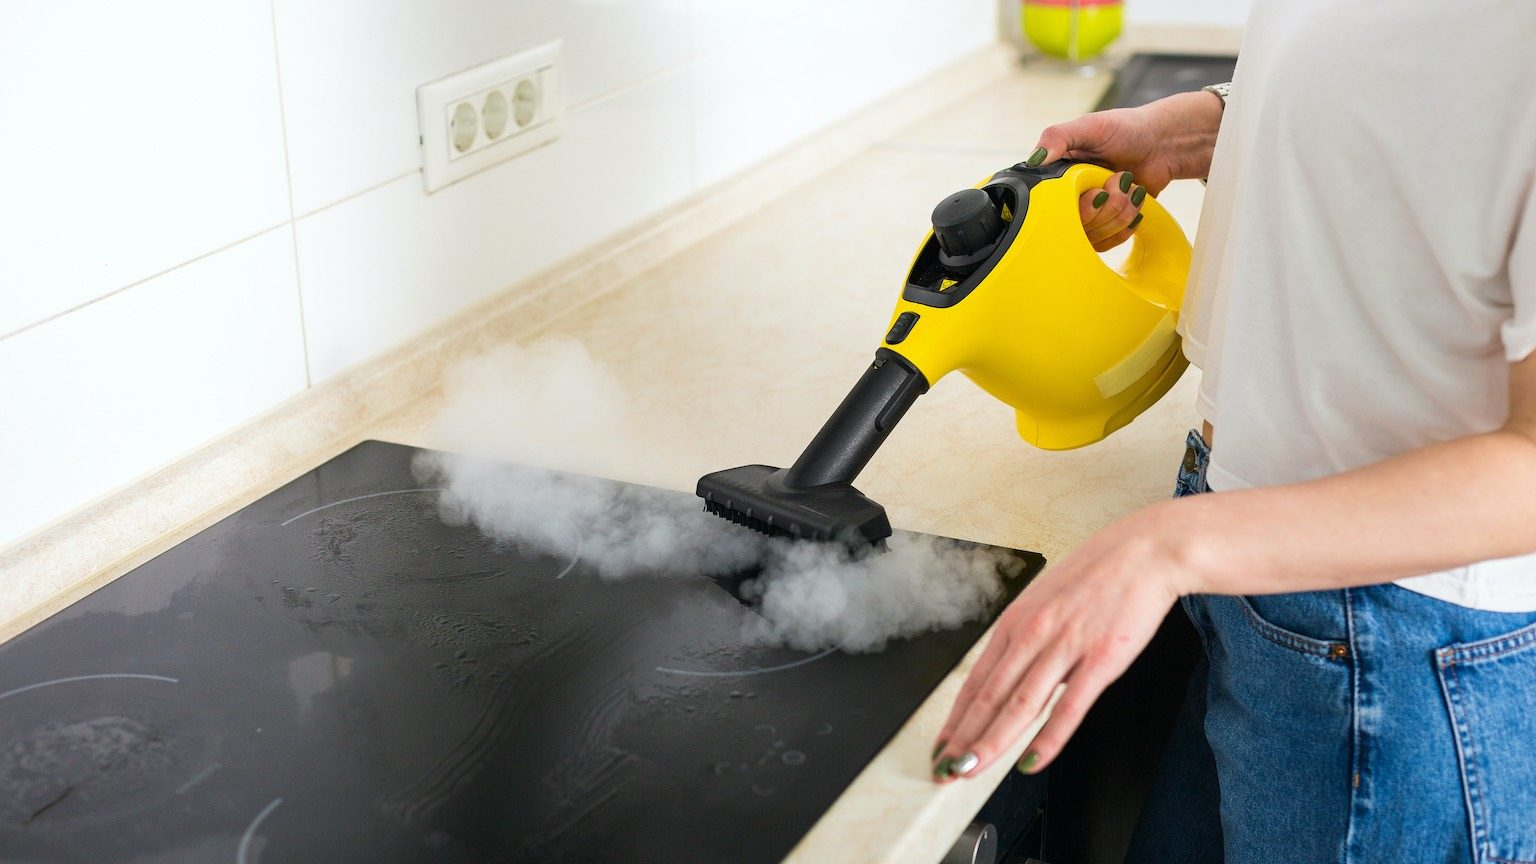 Cleaning the induction cooker using steam cleaner